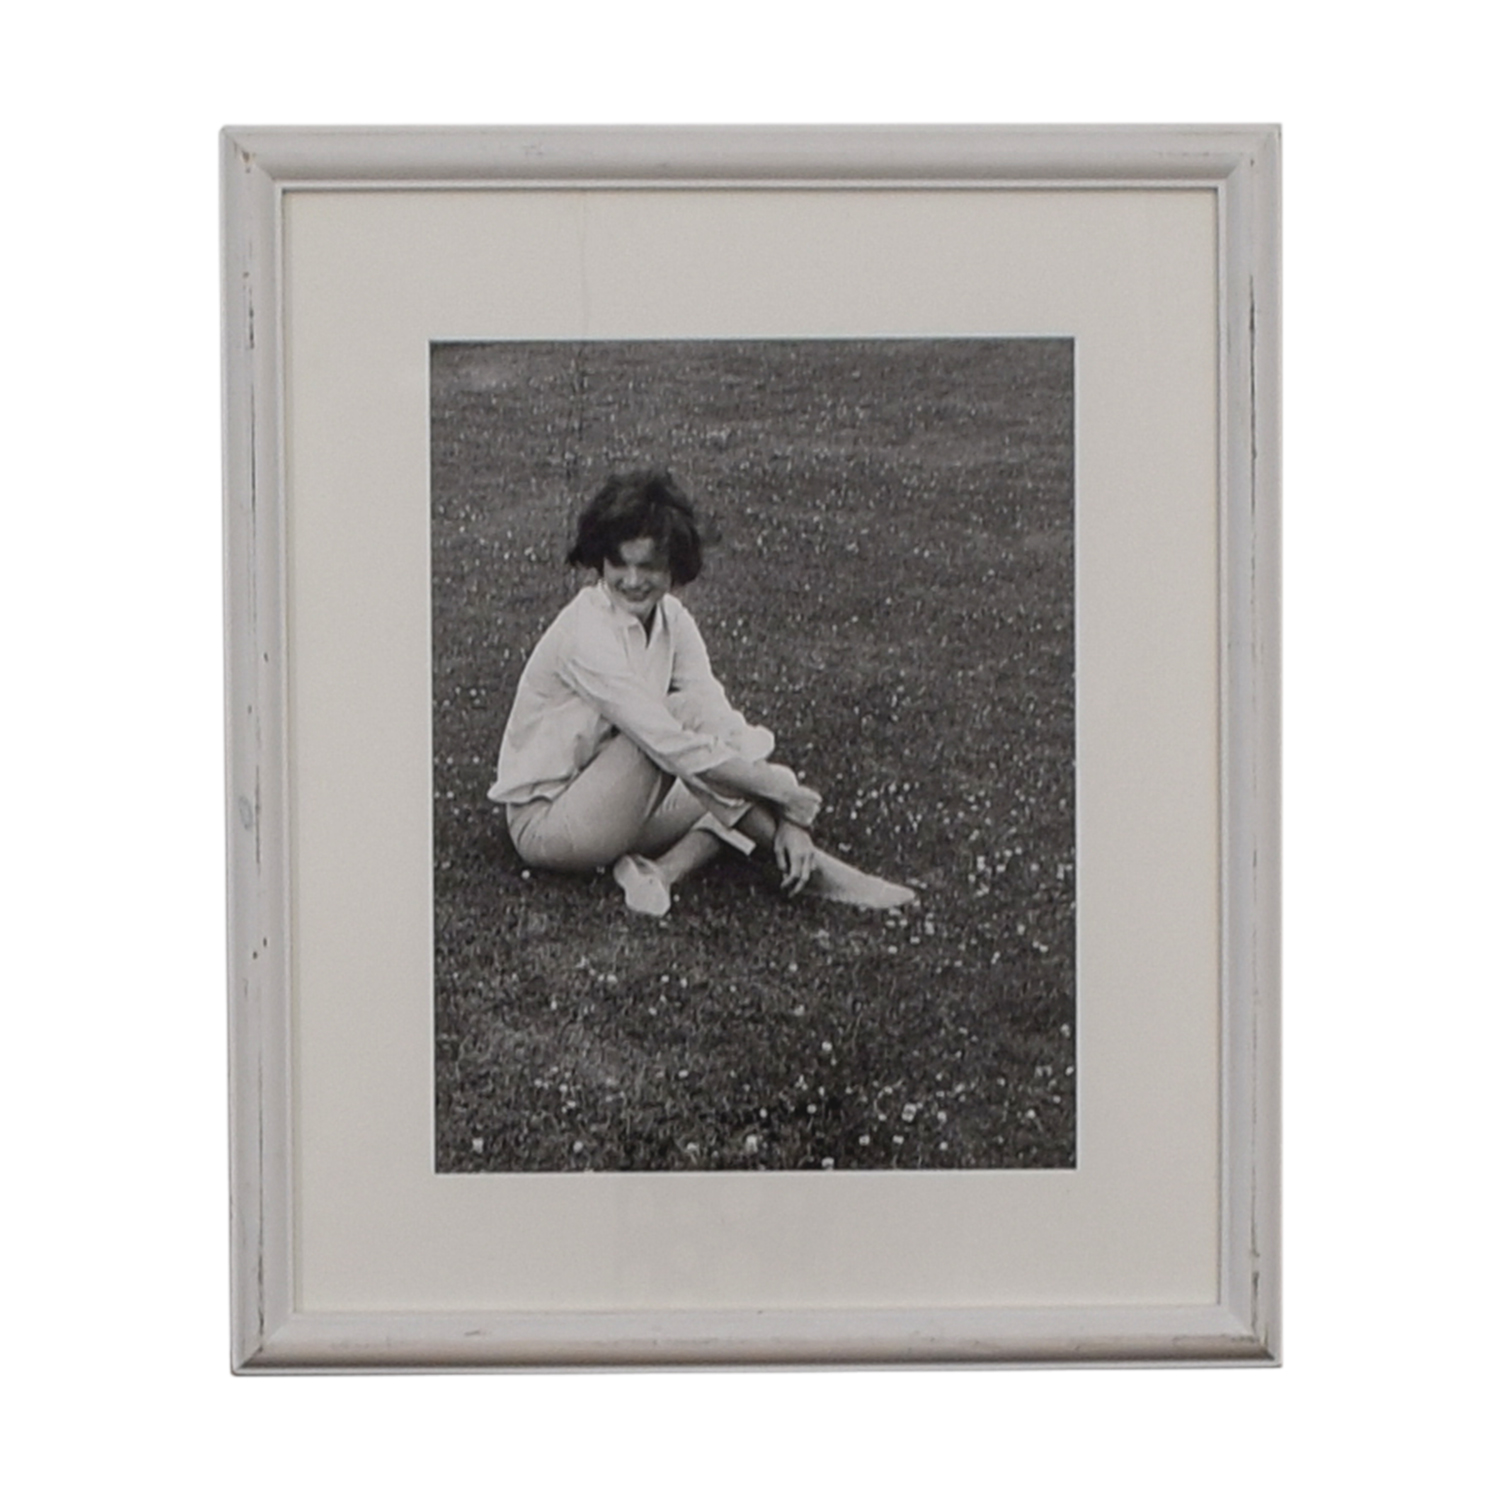 Ralph Lauren Ralph Lauren Jacqueline Kennedy Onassis Black and White Framed Photograph discount